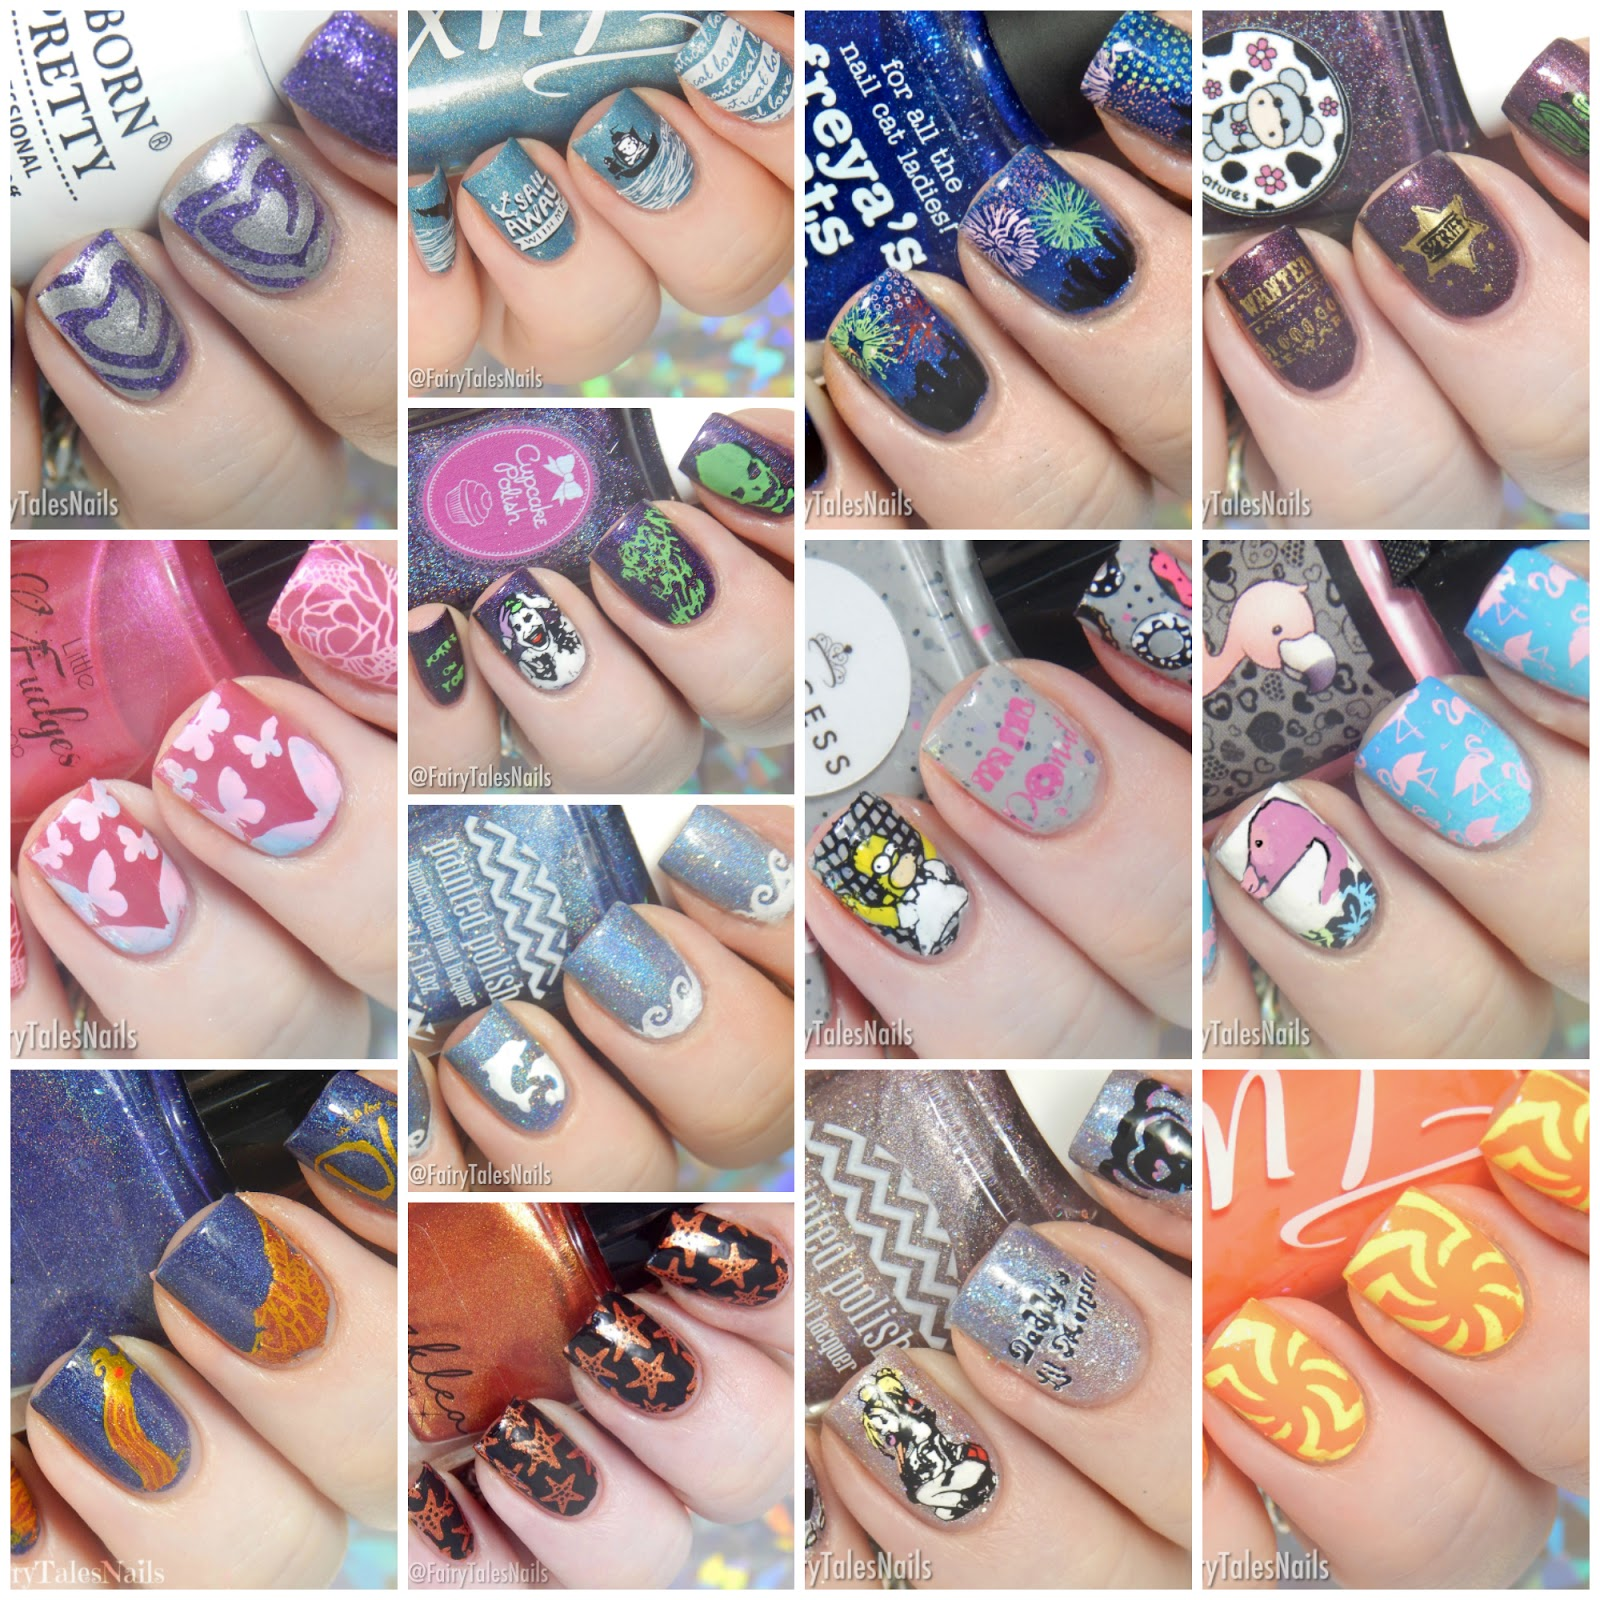 Fairytales Nails August 2017 Nail Art Round Up